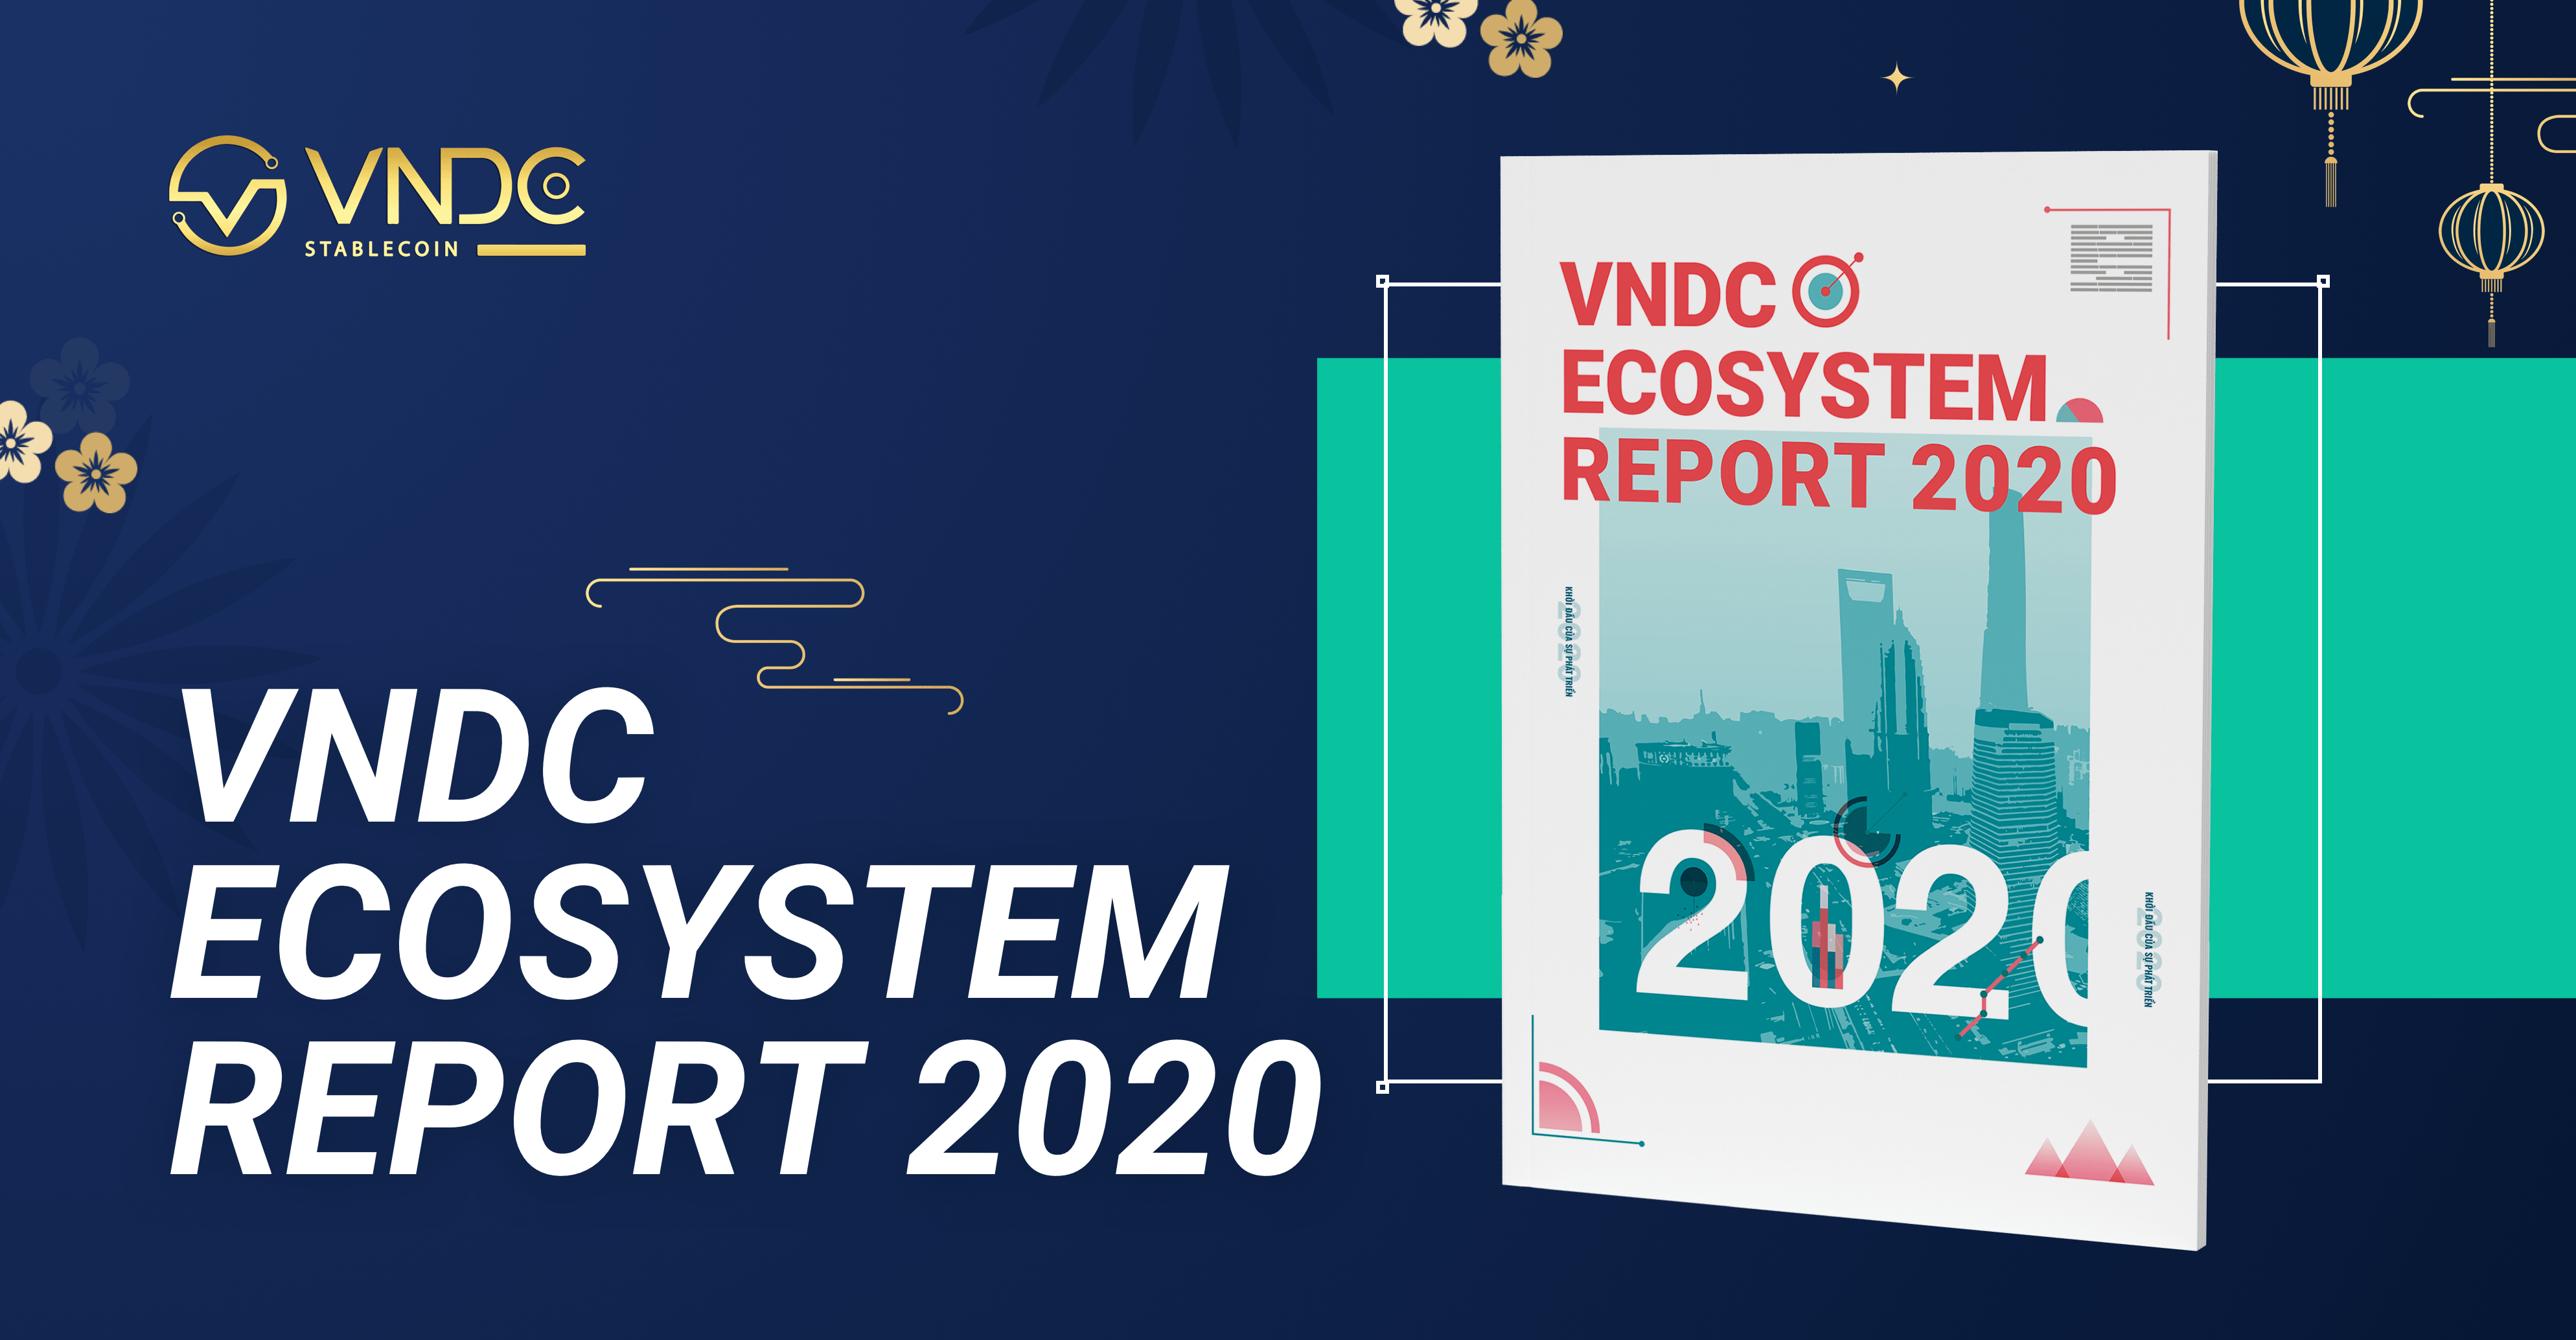 VNDC công bố VNDC Ecosystem Report 2020